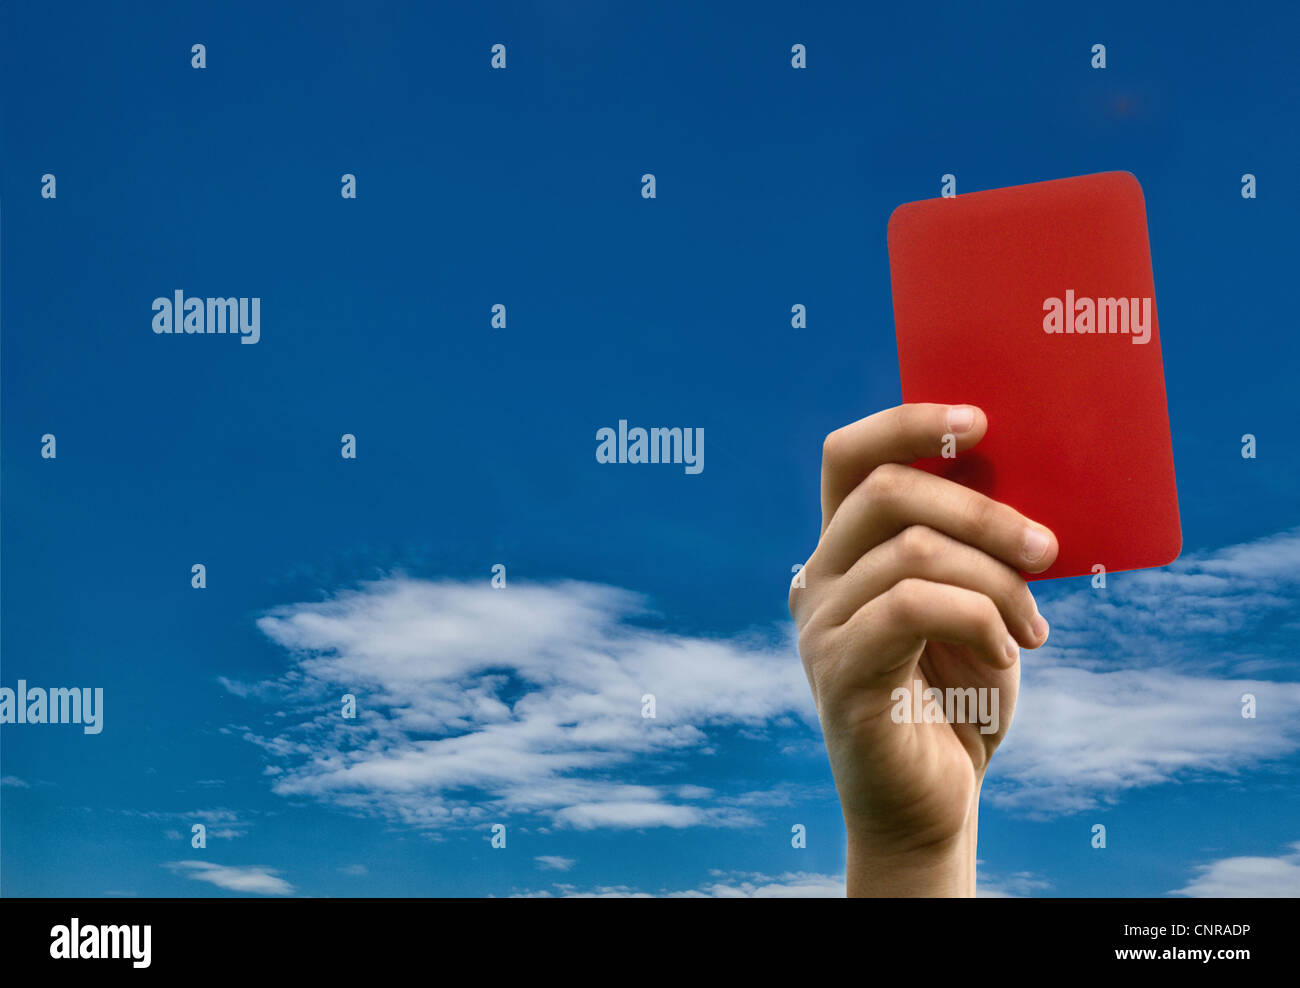 Hand holding red card against blue sky - Stock Image